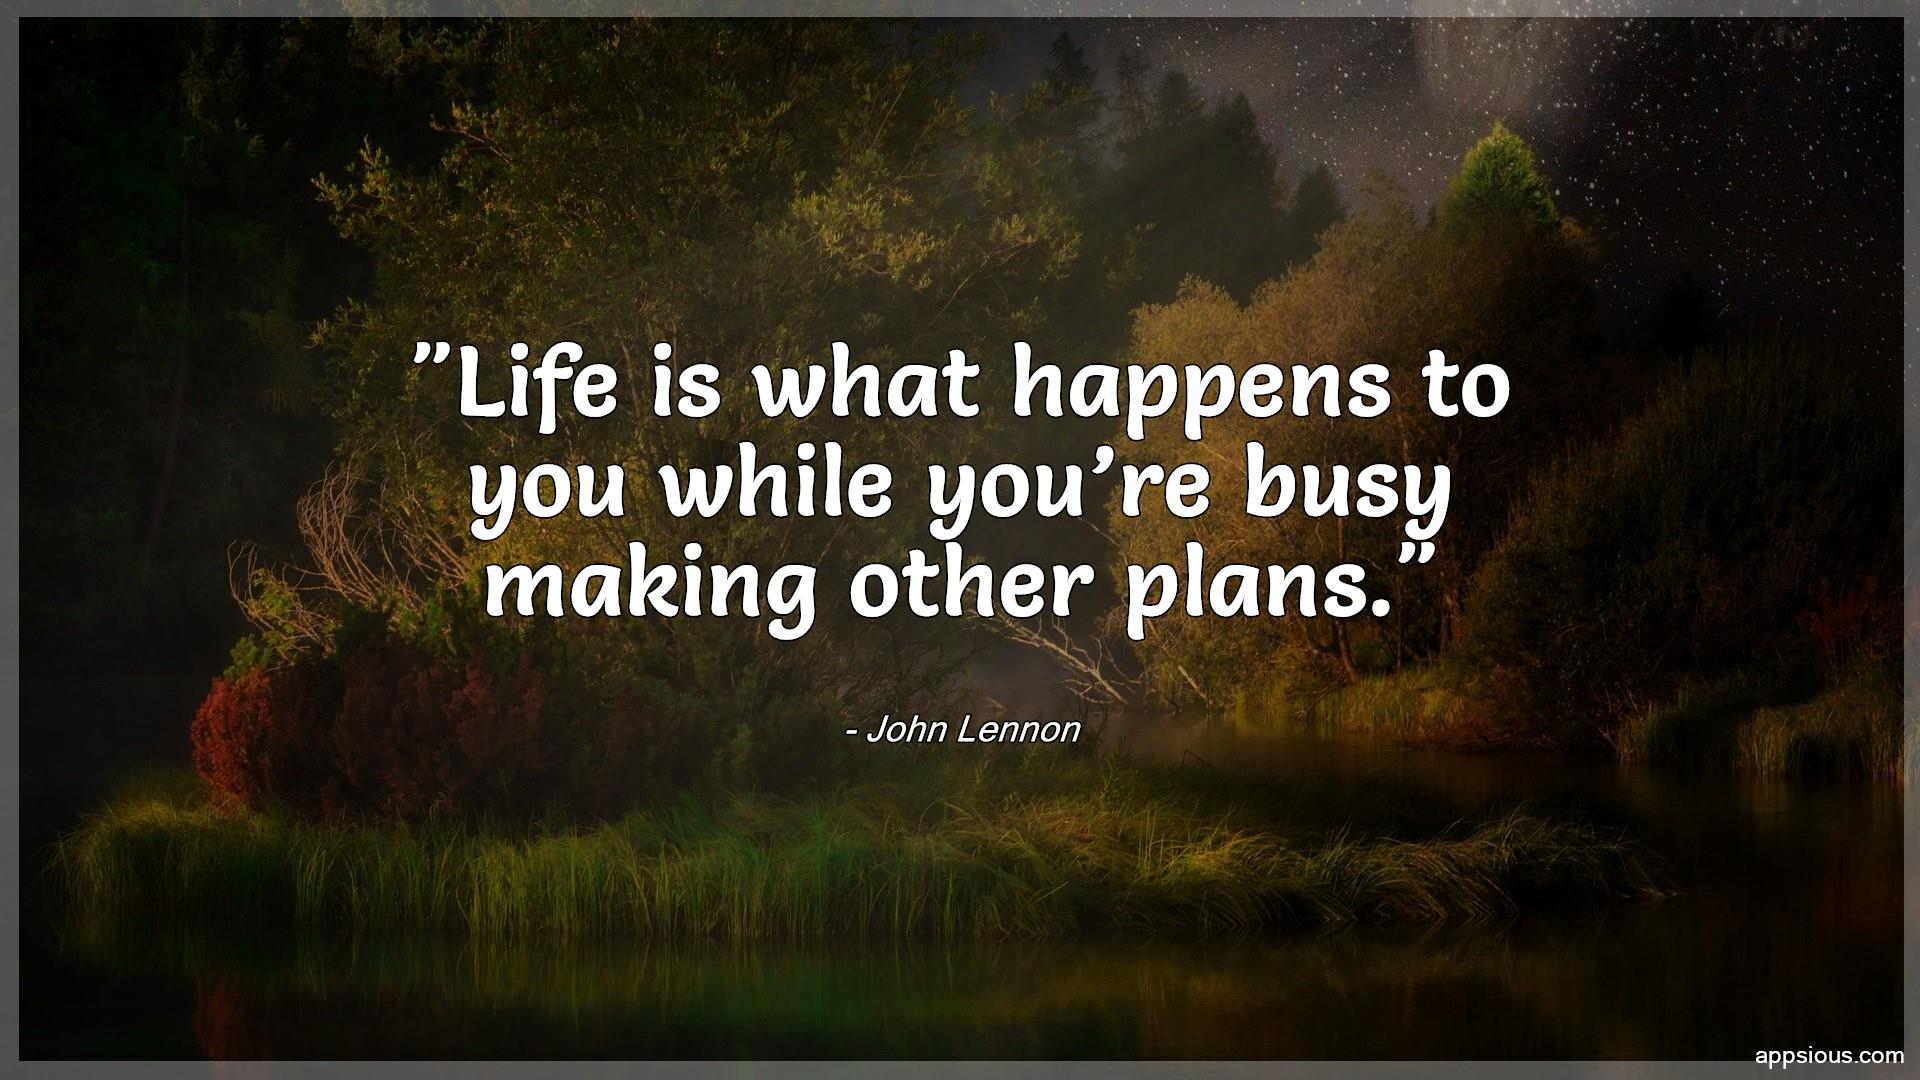 Life is what happens to you while you're busy making other plans.